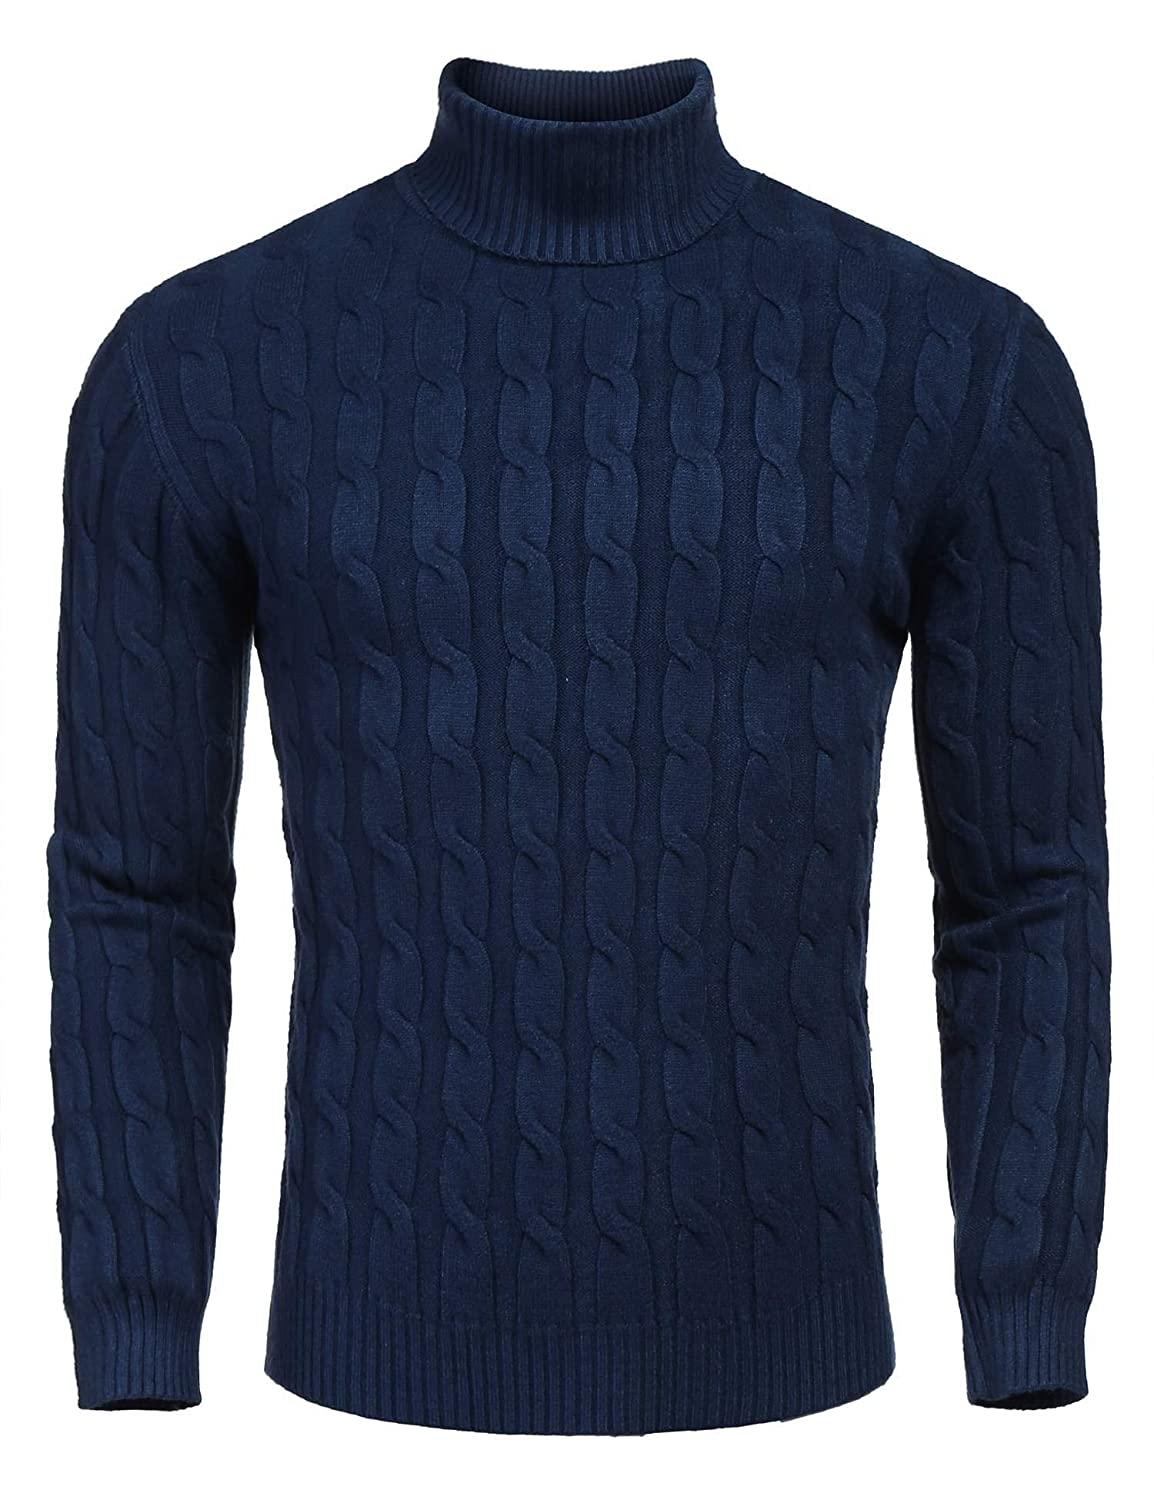 L'Amore Coofandy Mens Turtleneck Knitted Jumper Long Sleeve Casual Top Cable Knit Sweater